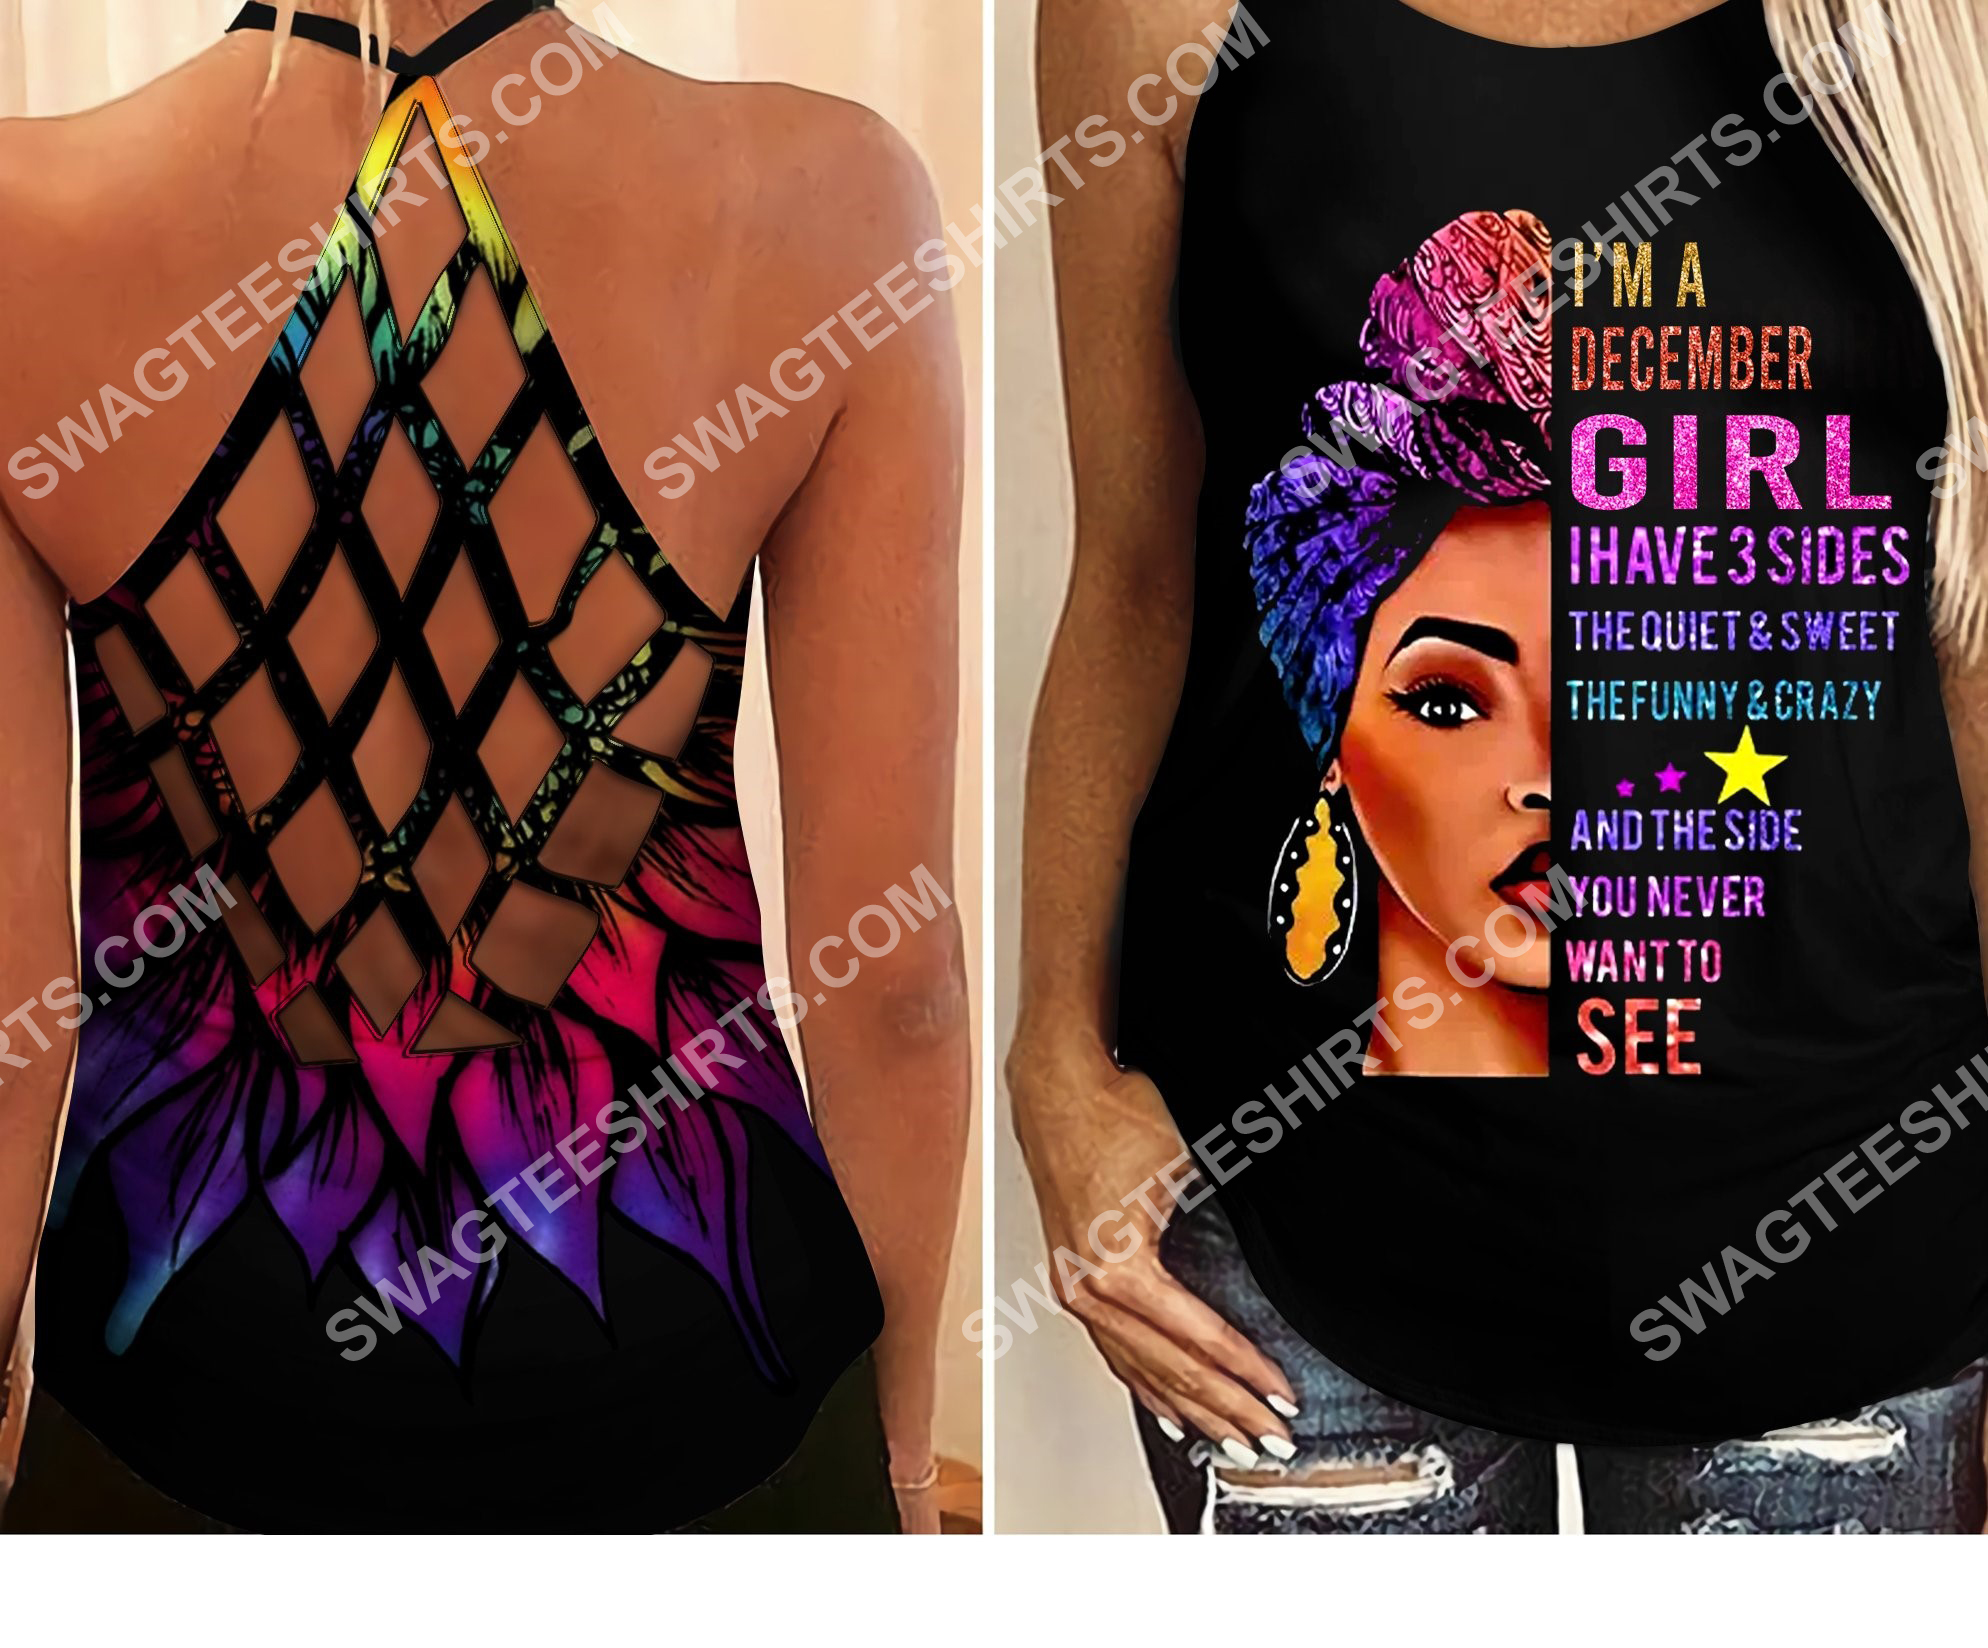 i'm a december girl i have 3 sides the quiet and sweet all over printed criss-cross tank top 2 - Copy